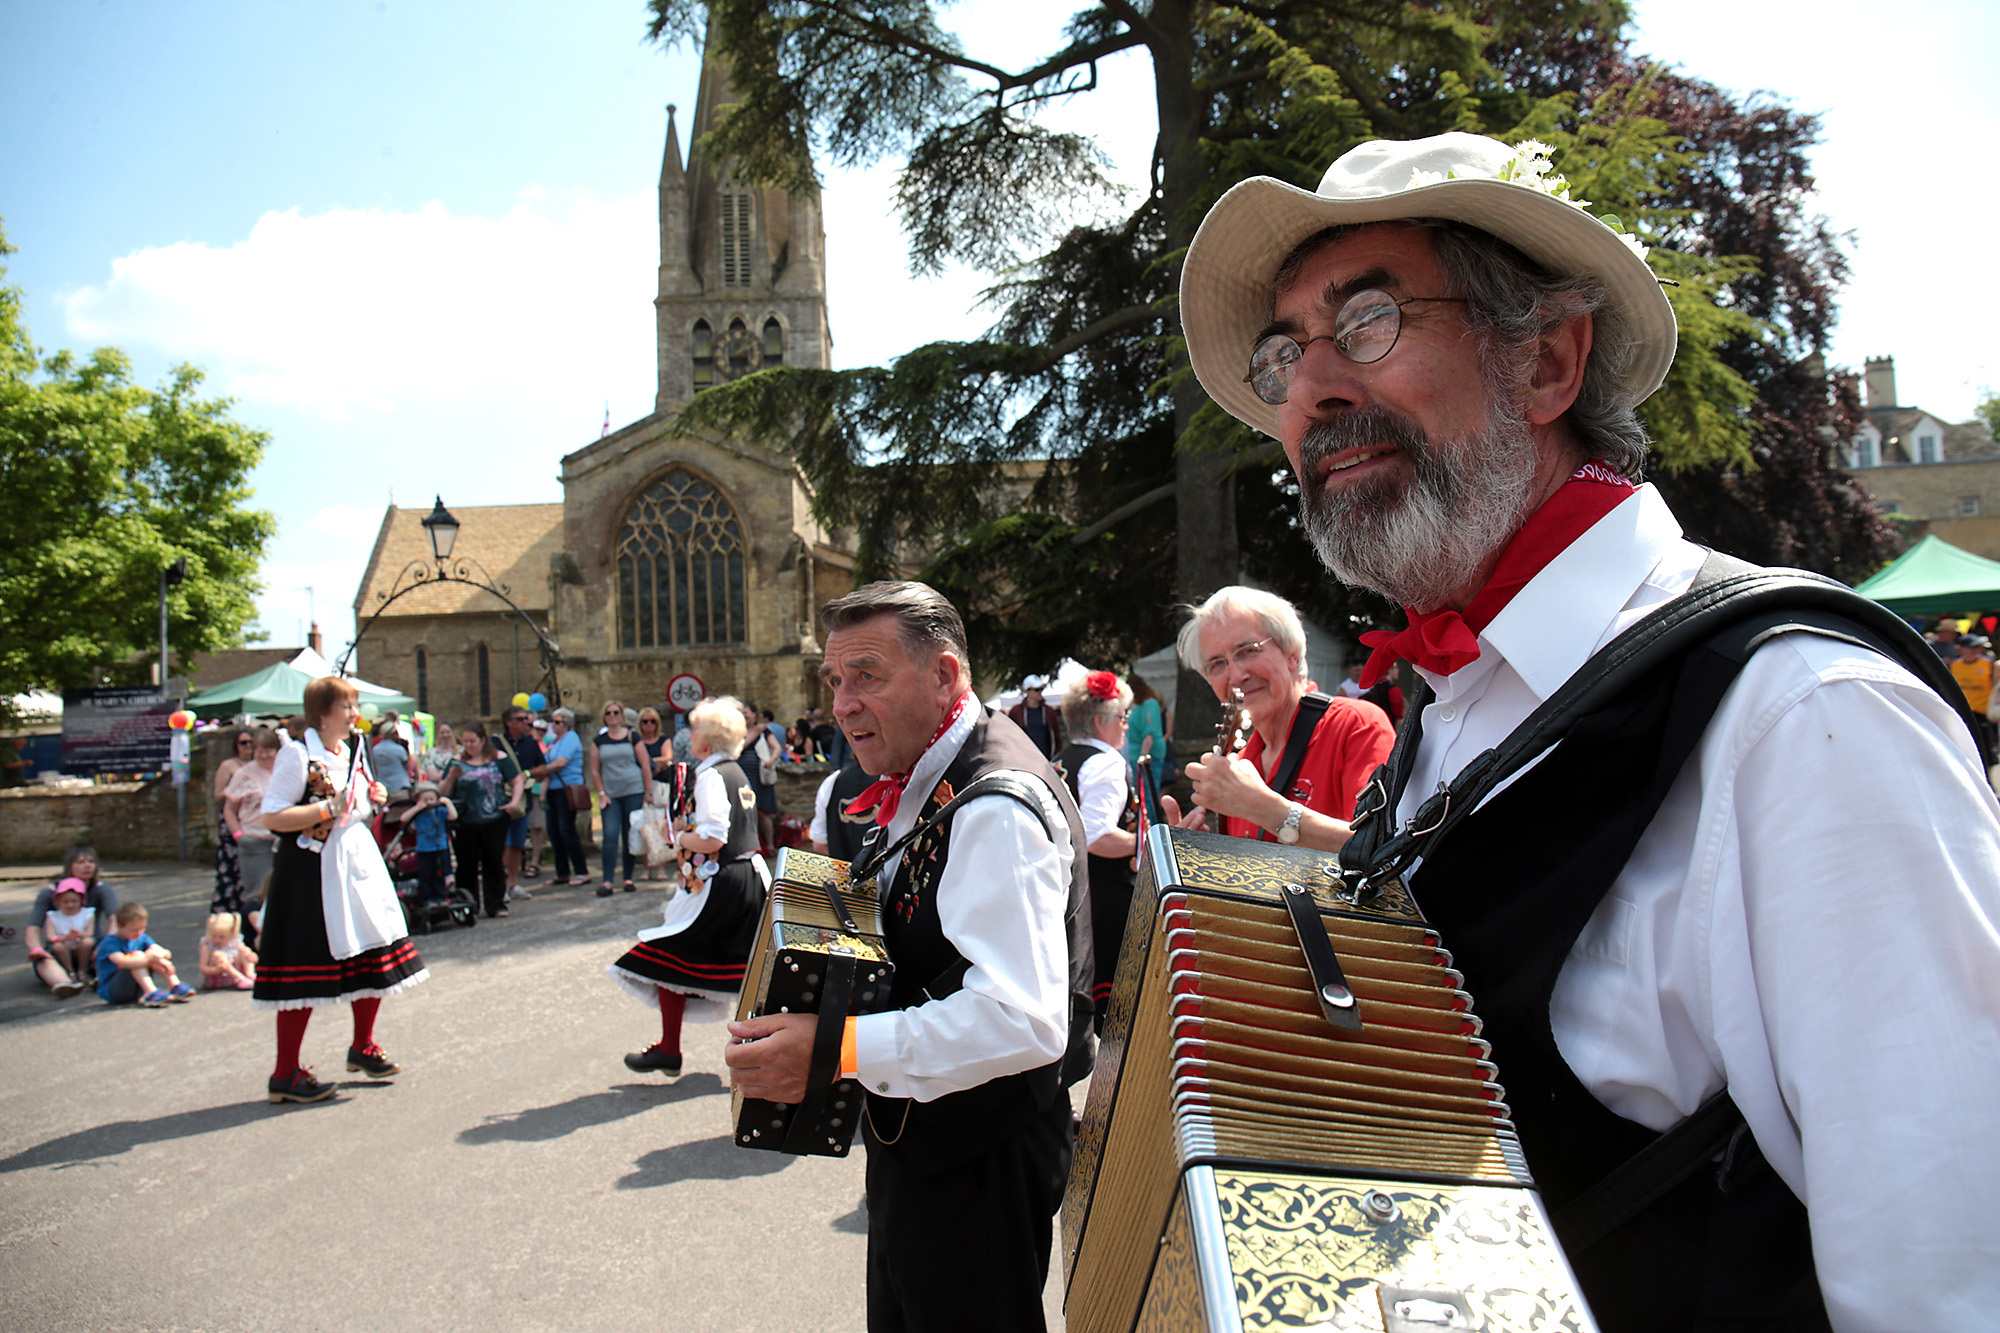 The Masons Apron Northwest Clog Morris dancers in action at The Witney Festival of Food and Drink on Saturday. Picture: Ric Mellis